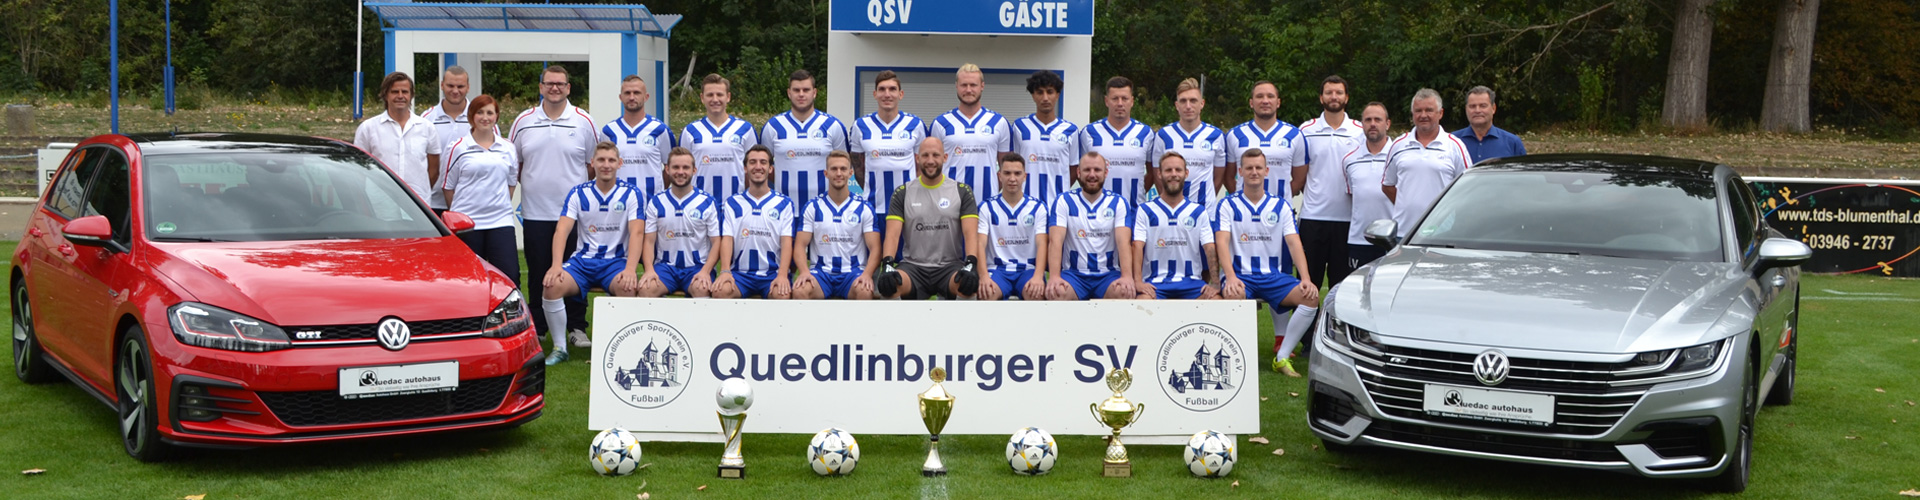 qsv-fussball-slider-14